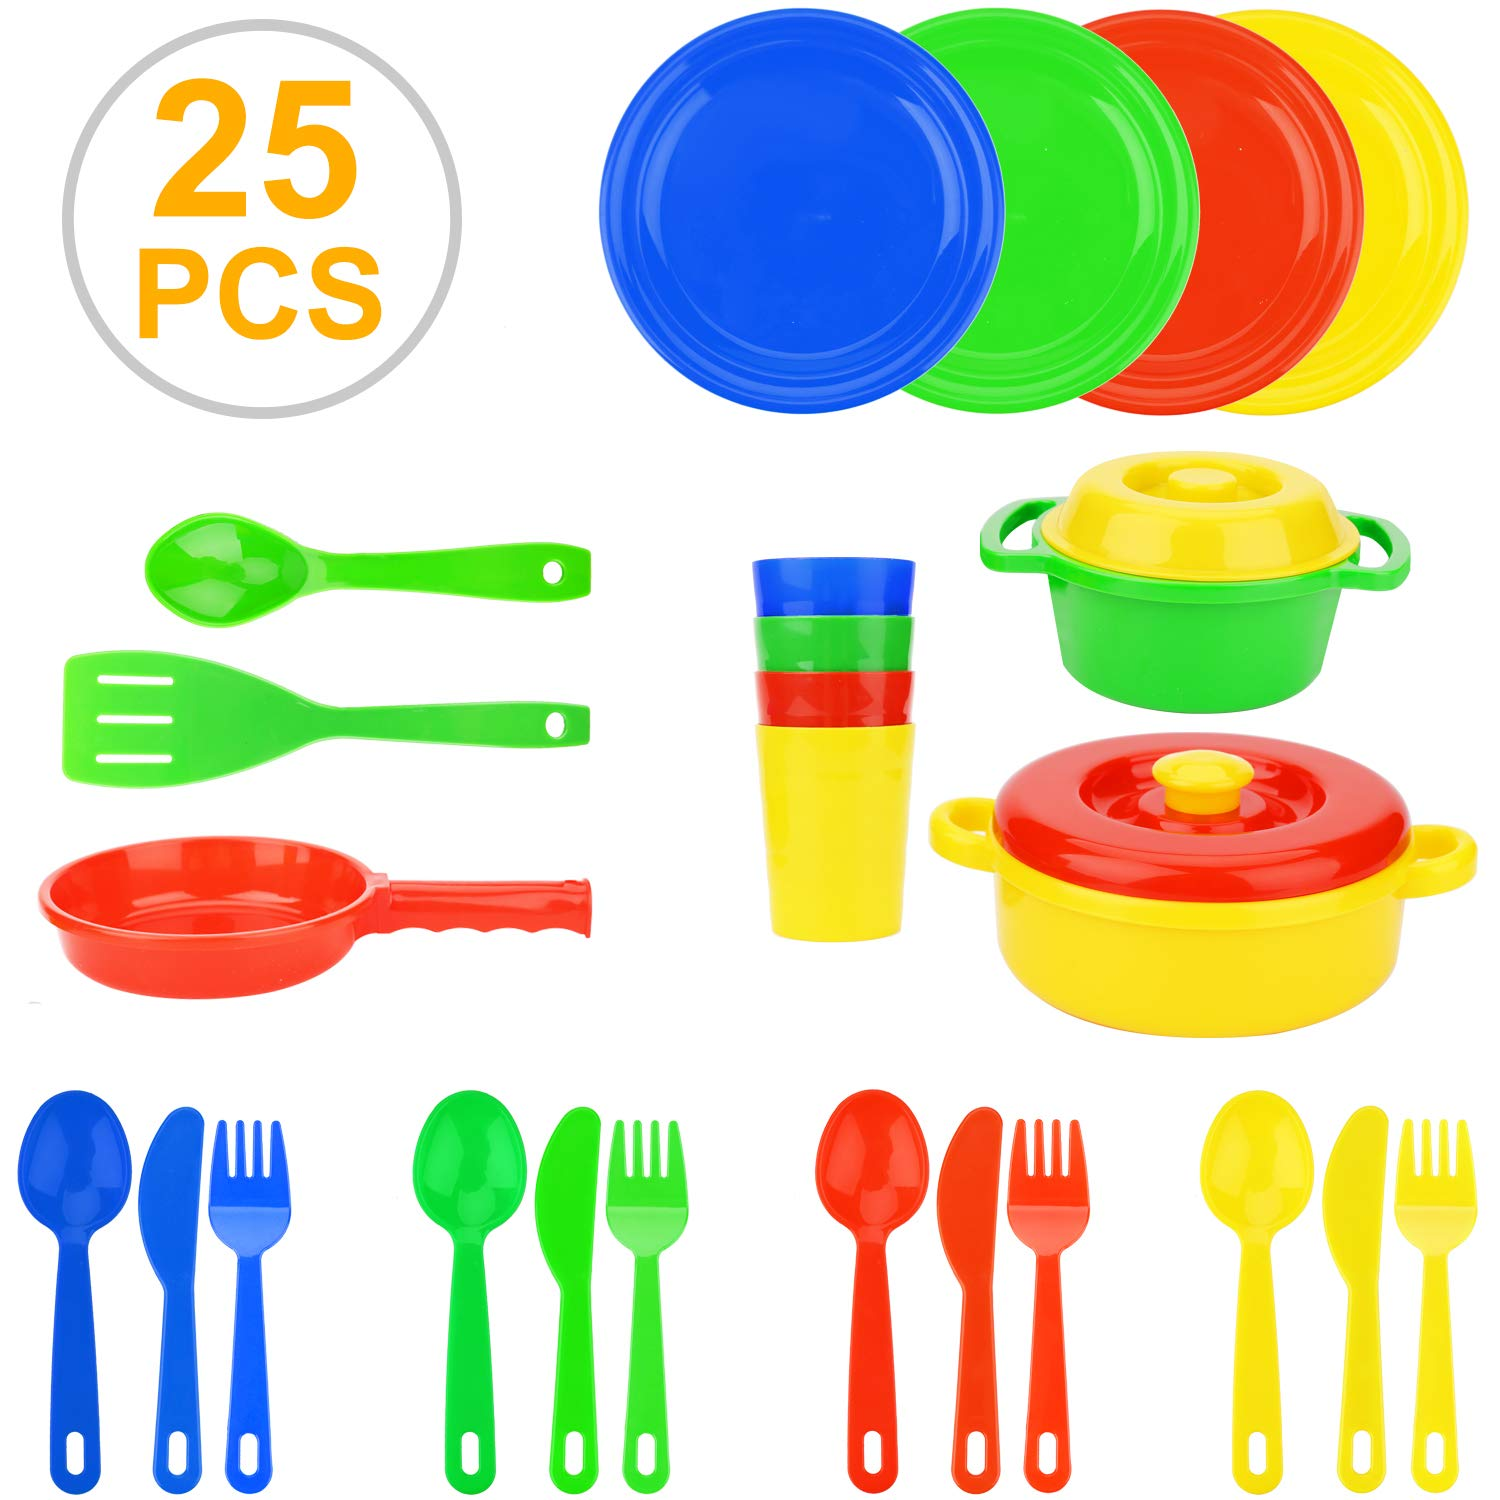 Flormoon Play Dishes Toys - 25pcs Pretend Play Cooking Toys Set - Safe, Eco-Friendly, Realistic - Kids Serving Dishes Tableware Dishes Playset - Kitchen Toys Set for Kids Boys Girl 3+